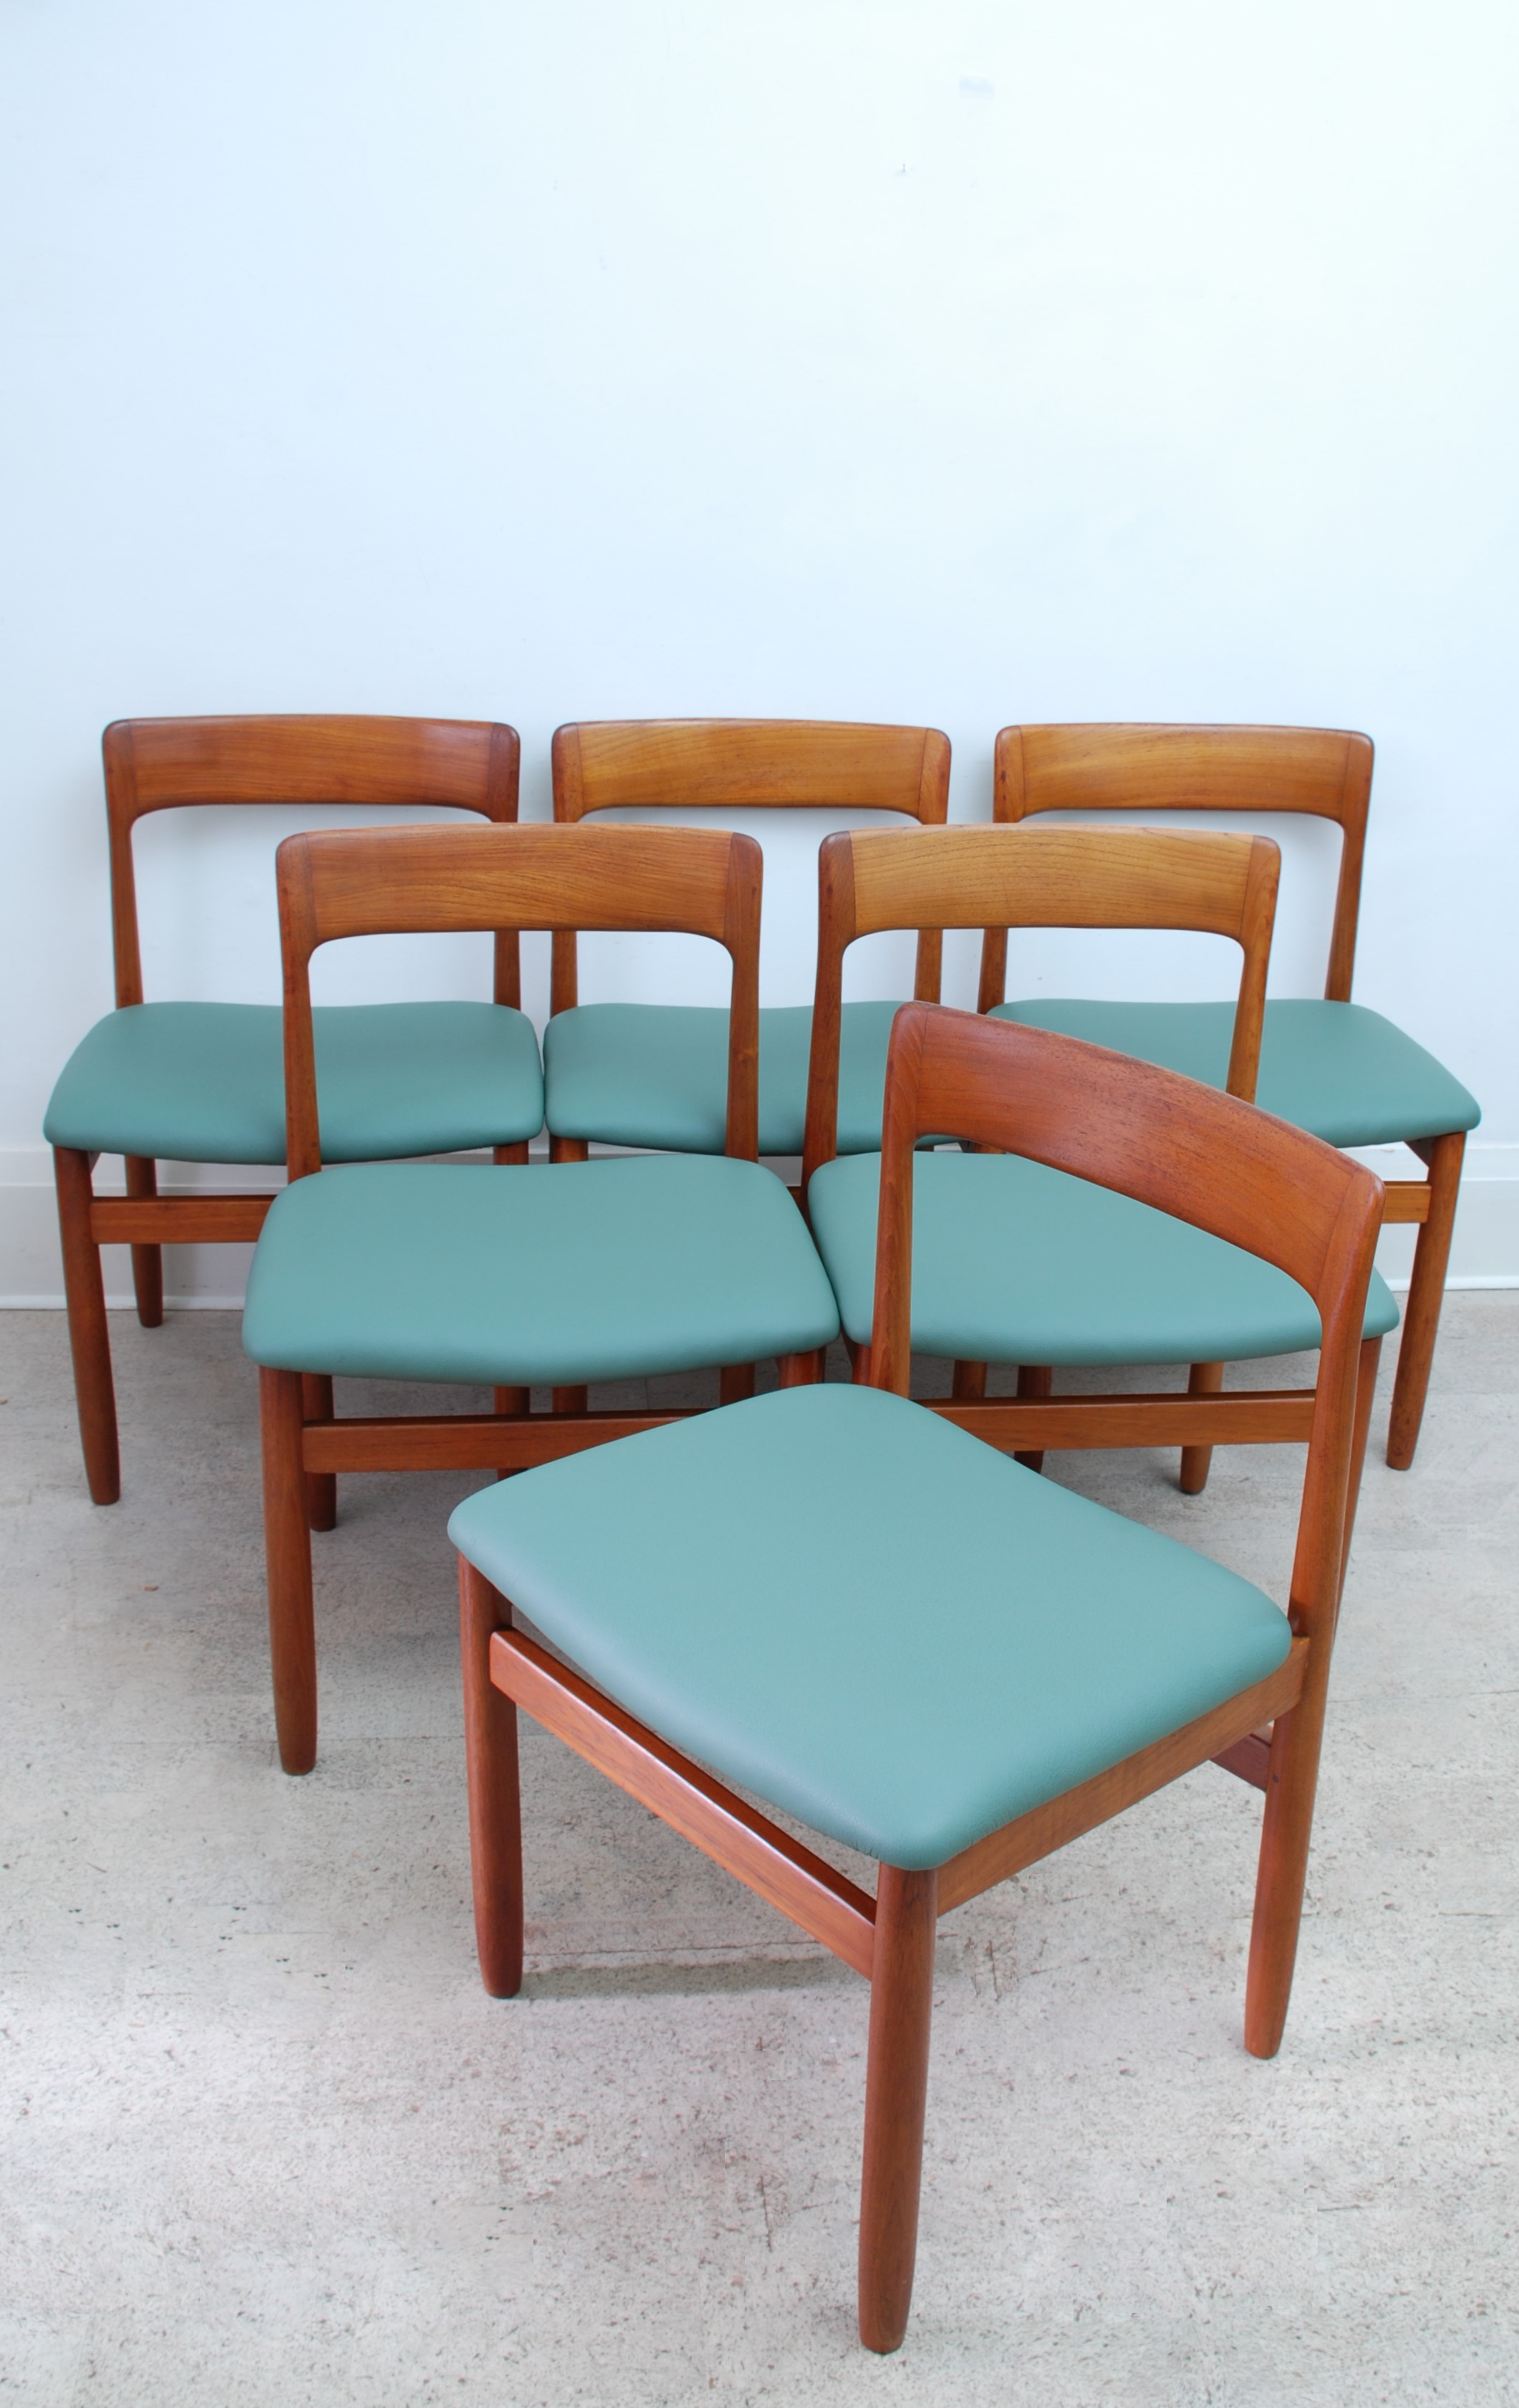 YOUNGER DINING CHAIRS